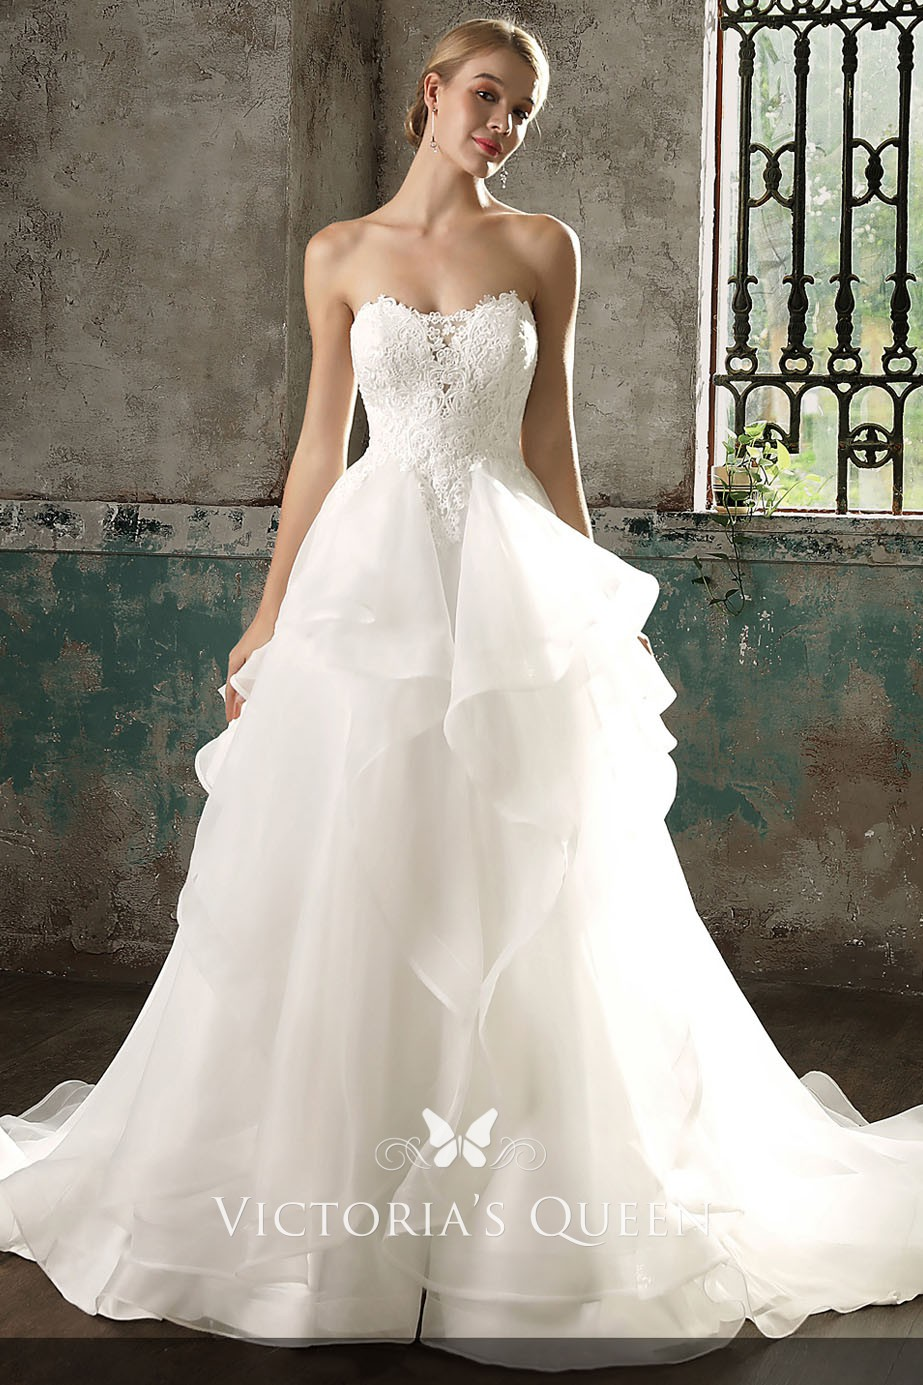 Princess Ivory Lace and Flounced Organza Strapless